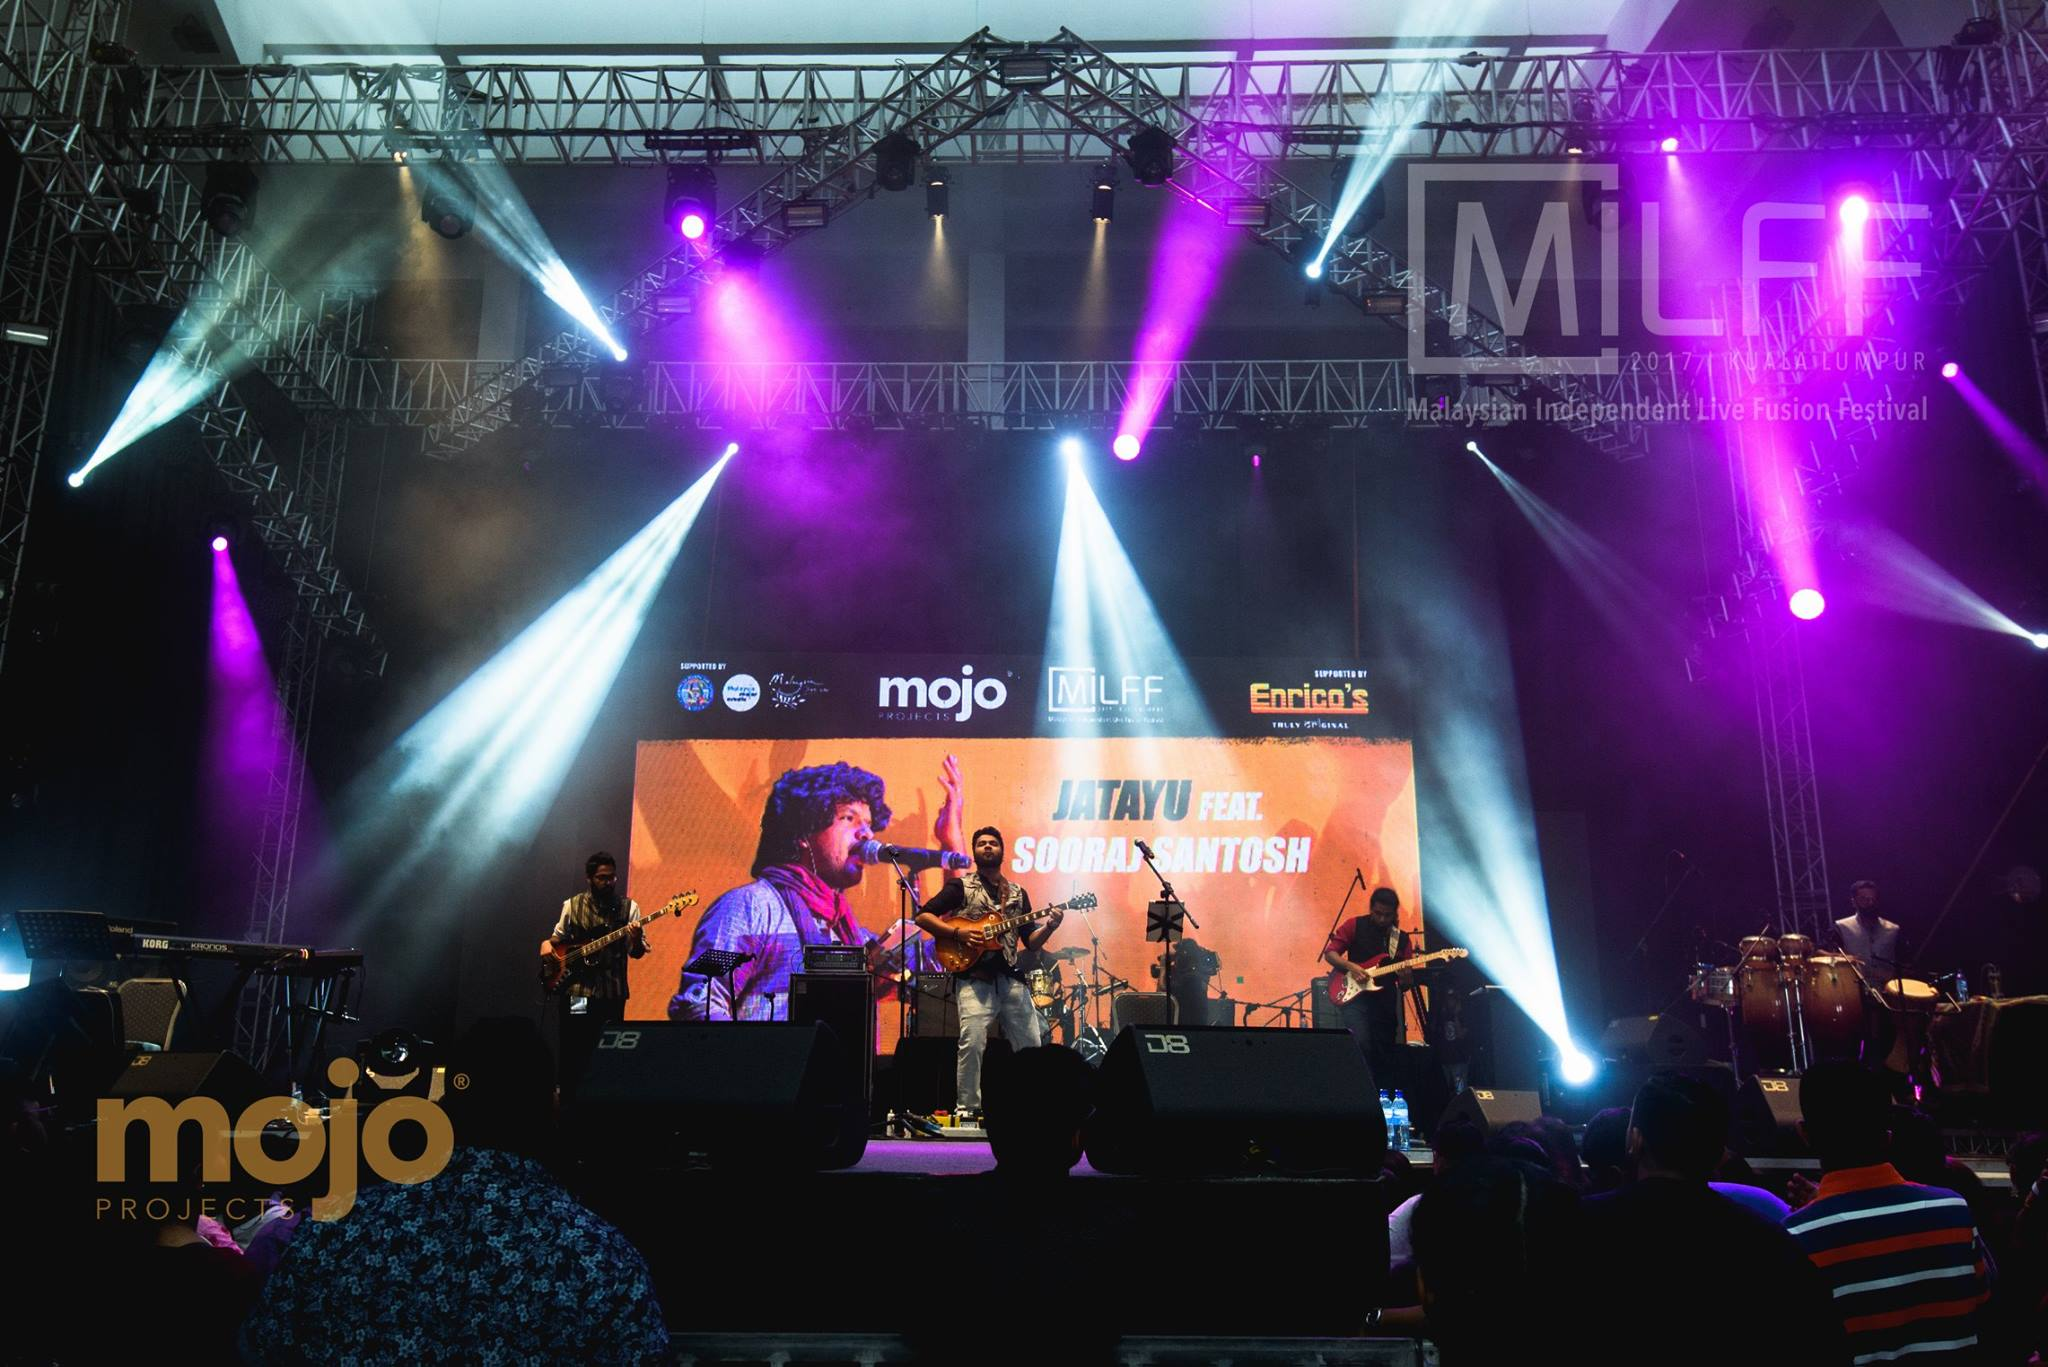 MILFF 2017 | Star Expo Centre KL